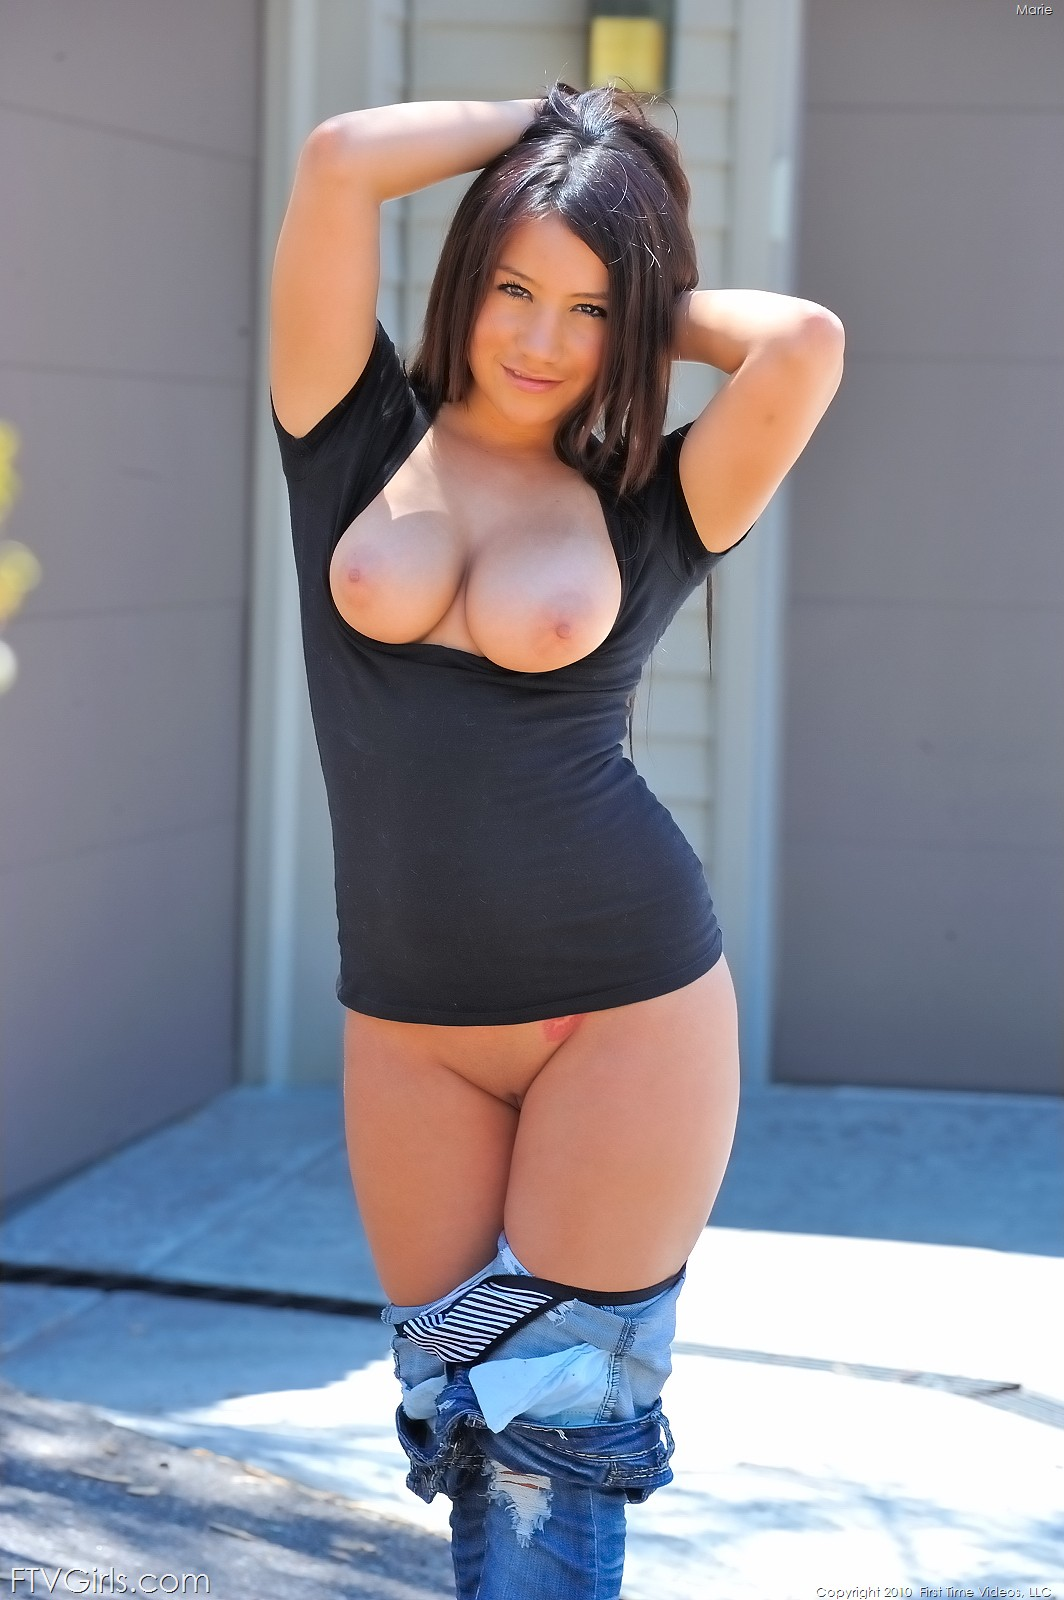 Nude and 40 lady next door porn pictures